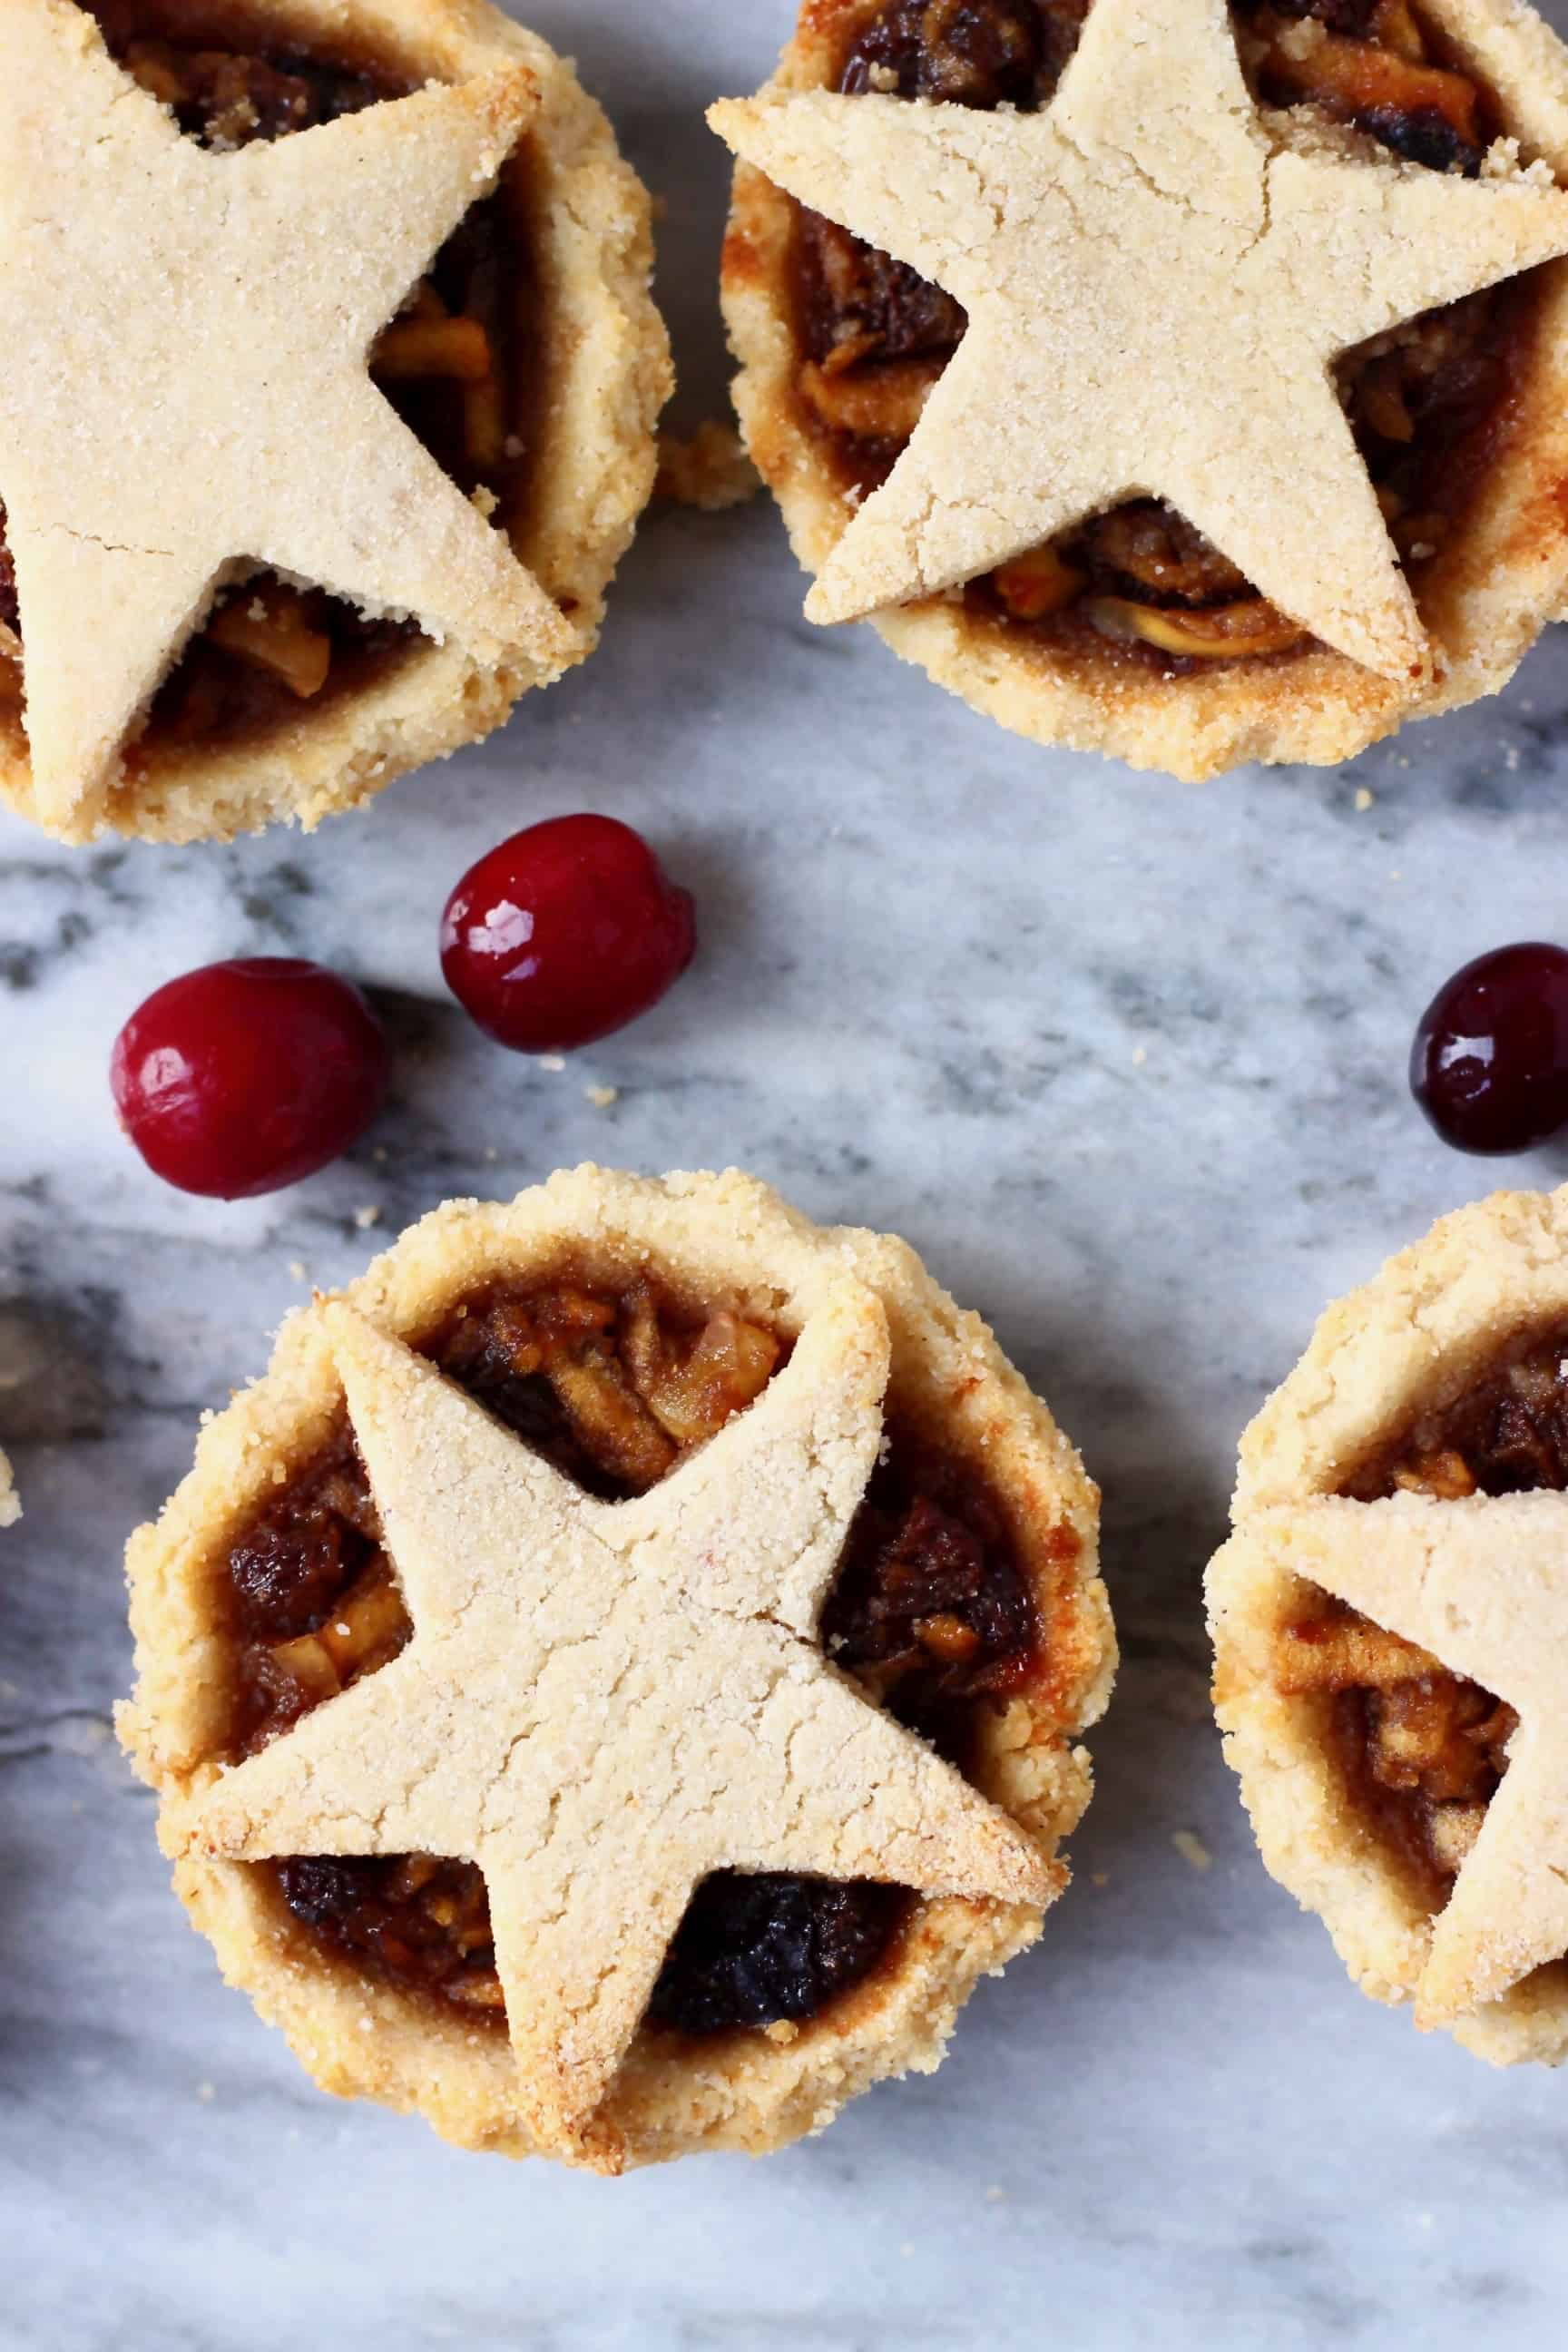 Four gluten-free vegan mince pies topped with pastry stars against a marble background